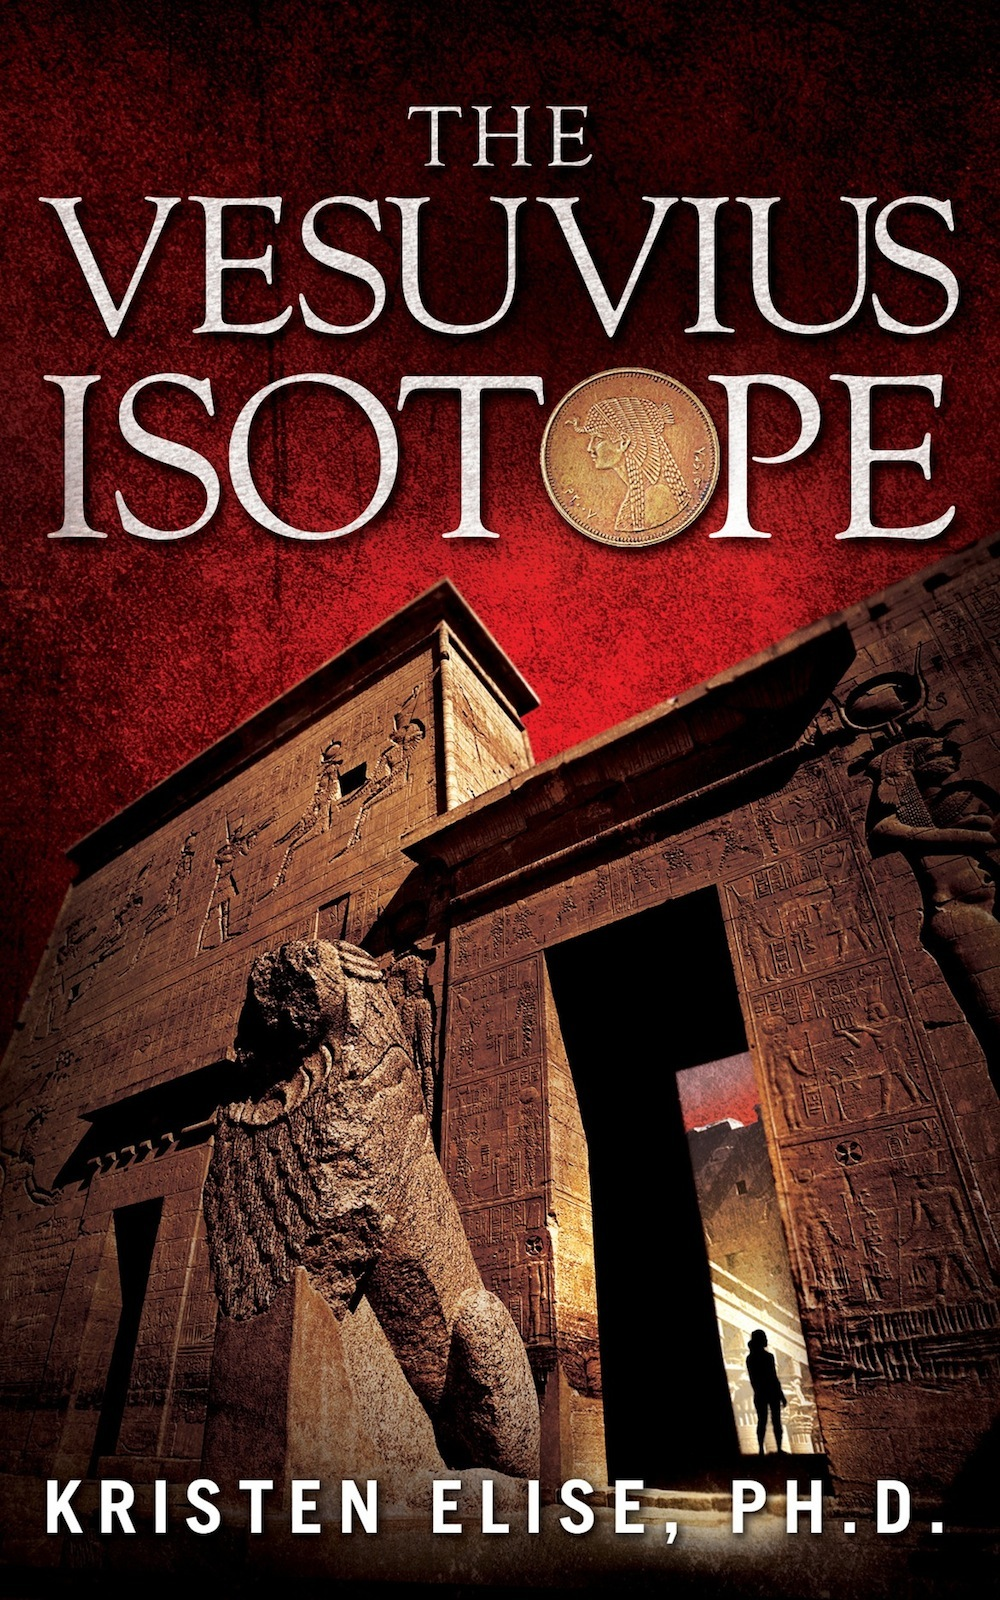 Purchase The Vesuvius Isotope